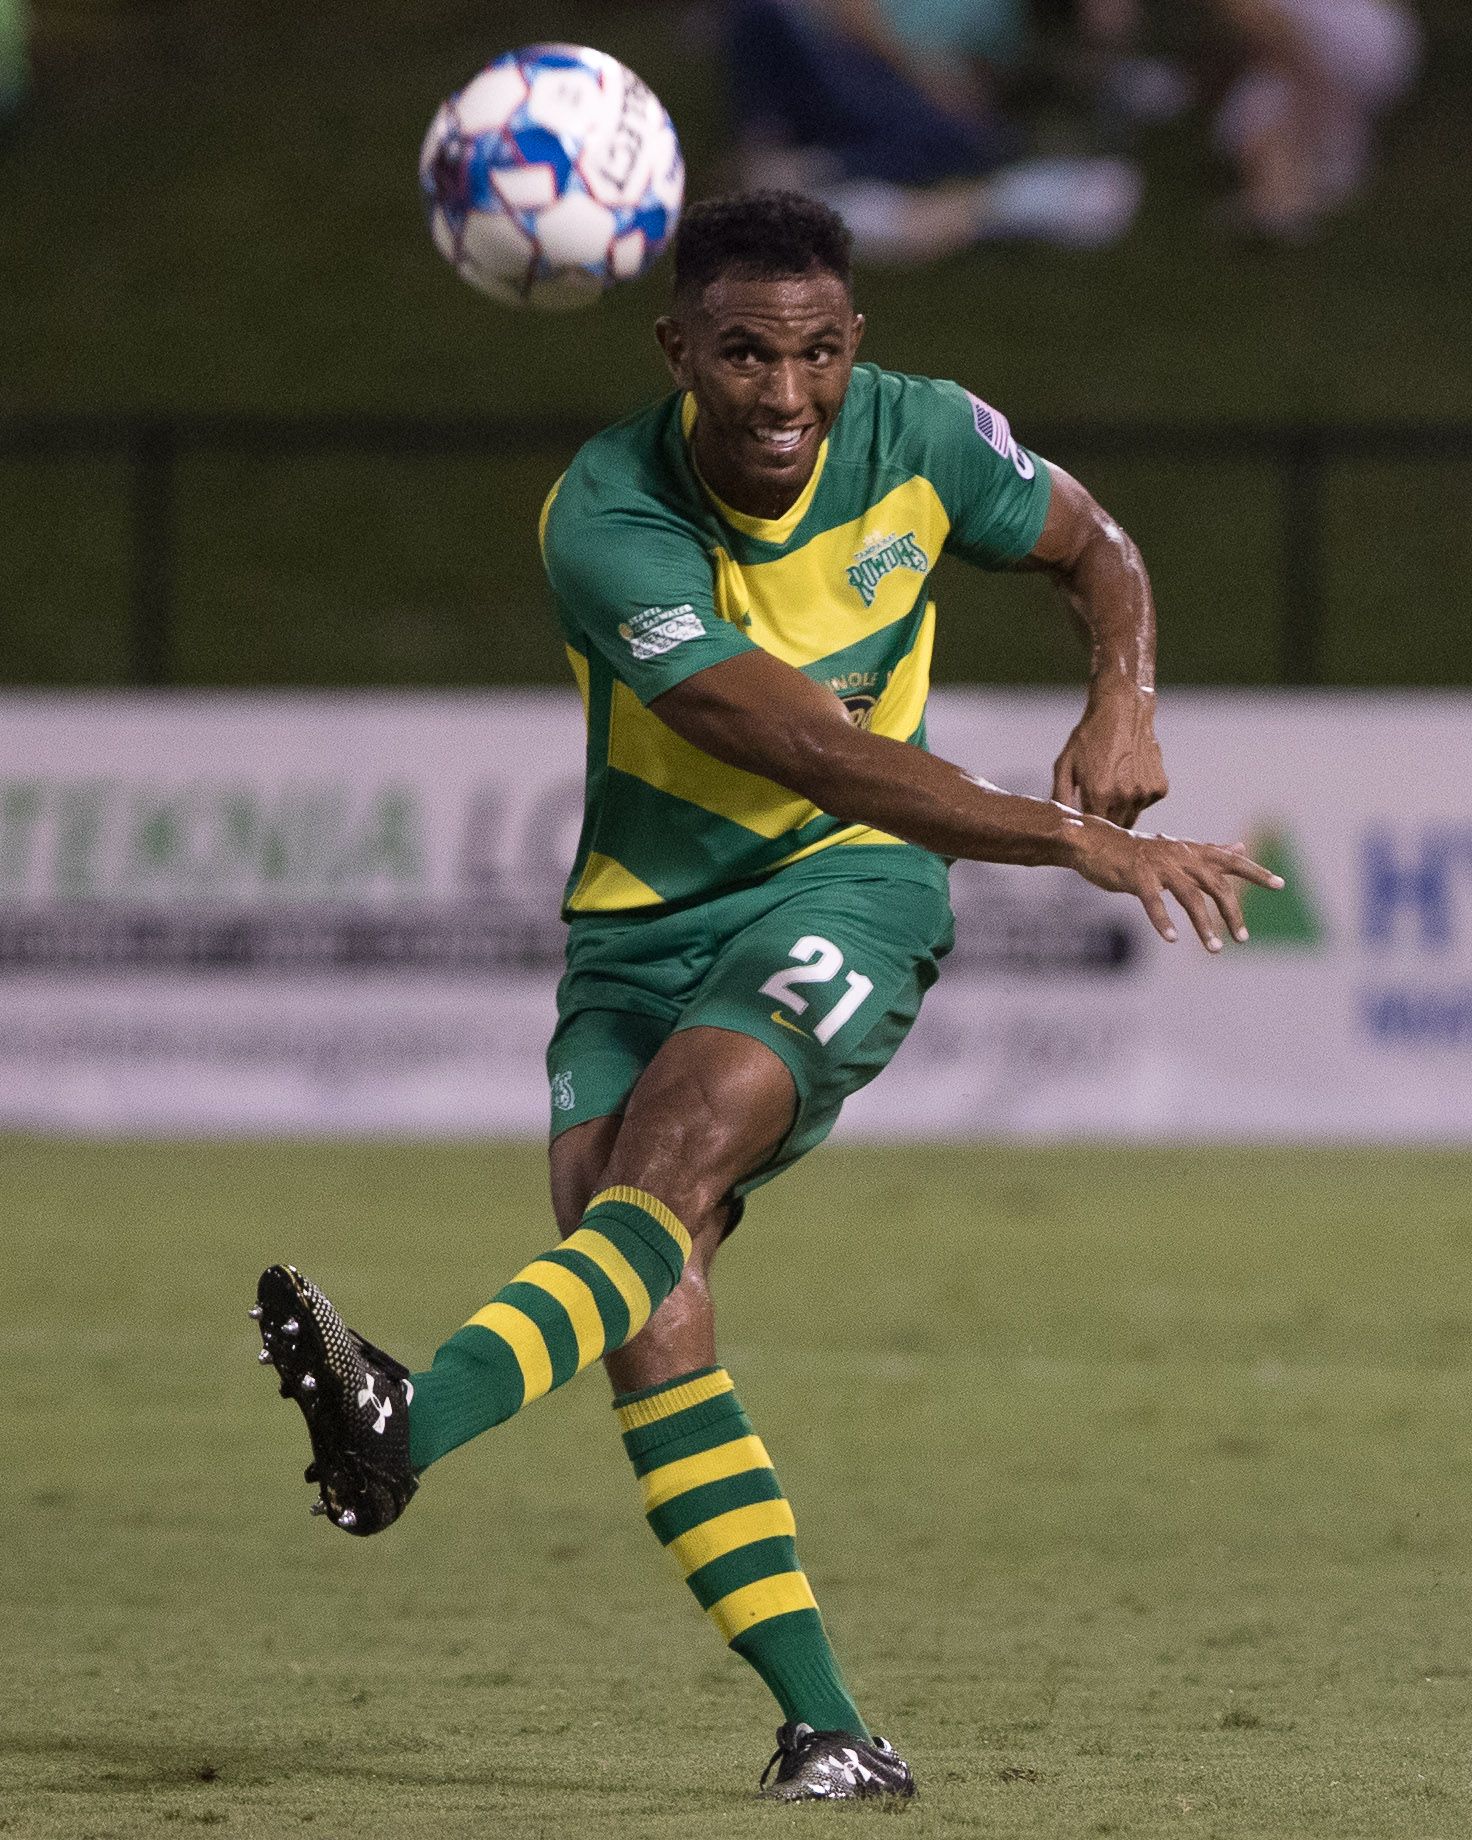 Ivan Magalhaes kicks the ball./STEVEN MUNCIE